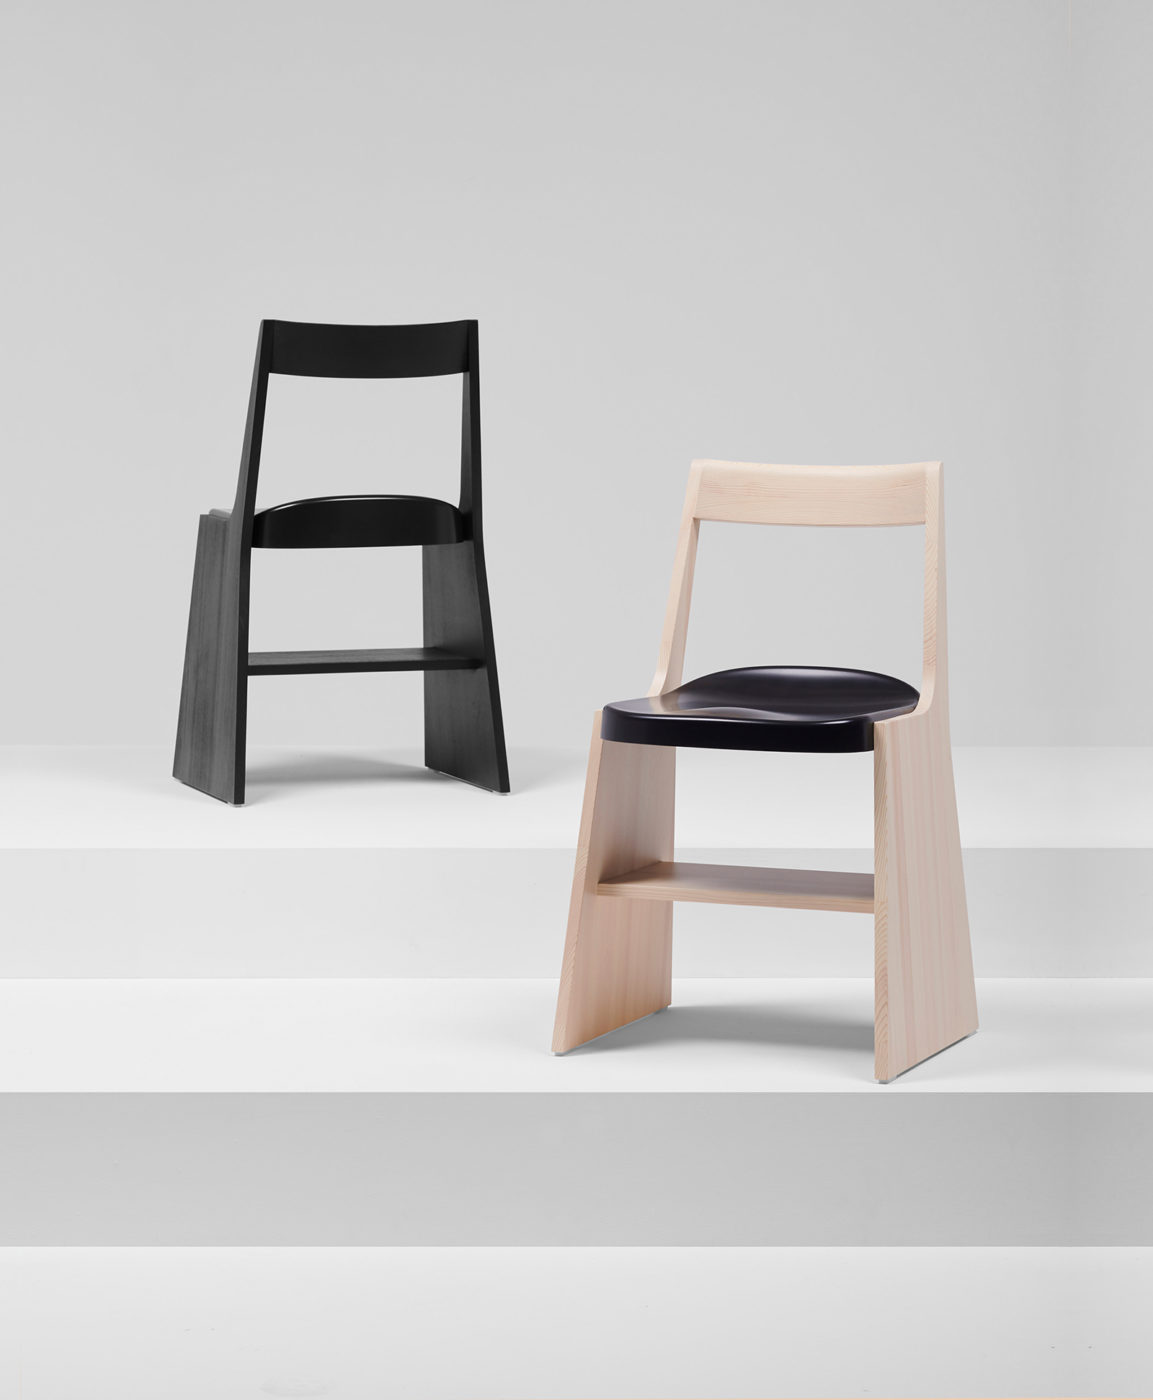 Minimalist Collection of Chairs and Stools by Studio Industrial Facility for Mattiazzi